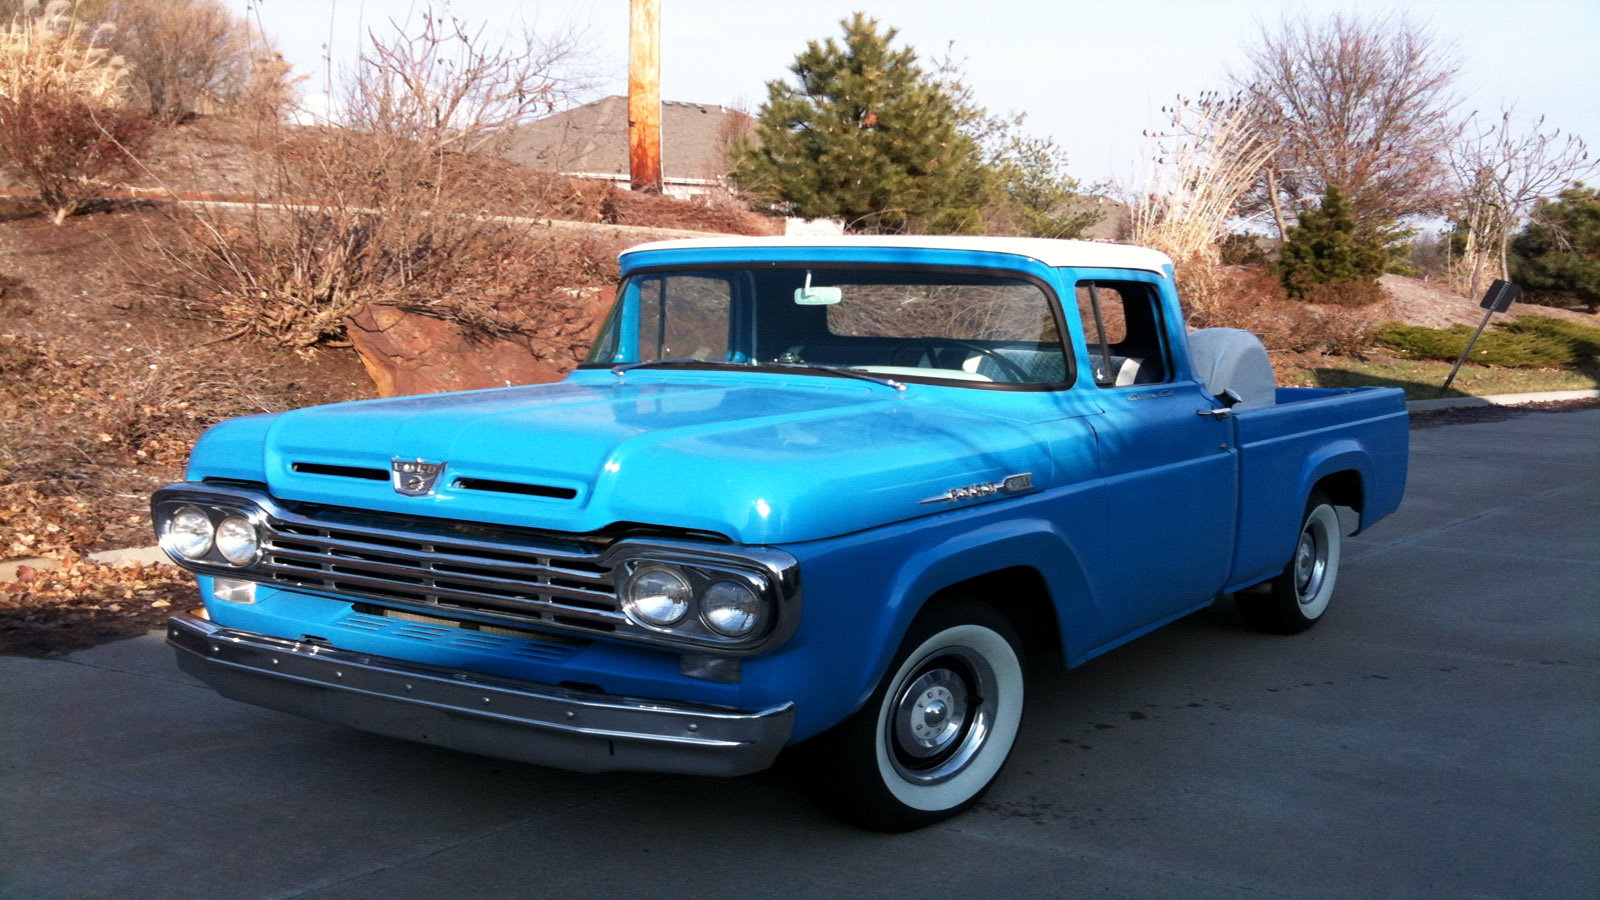 The 1959 F-100